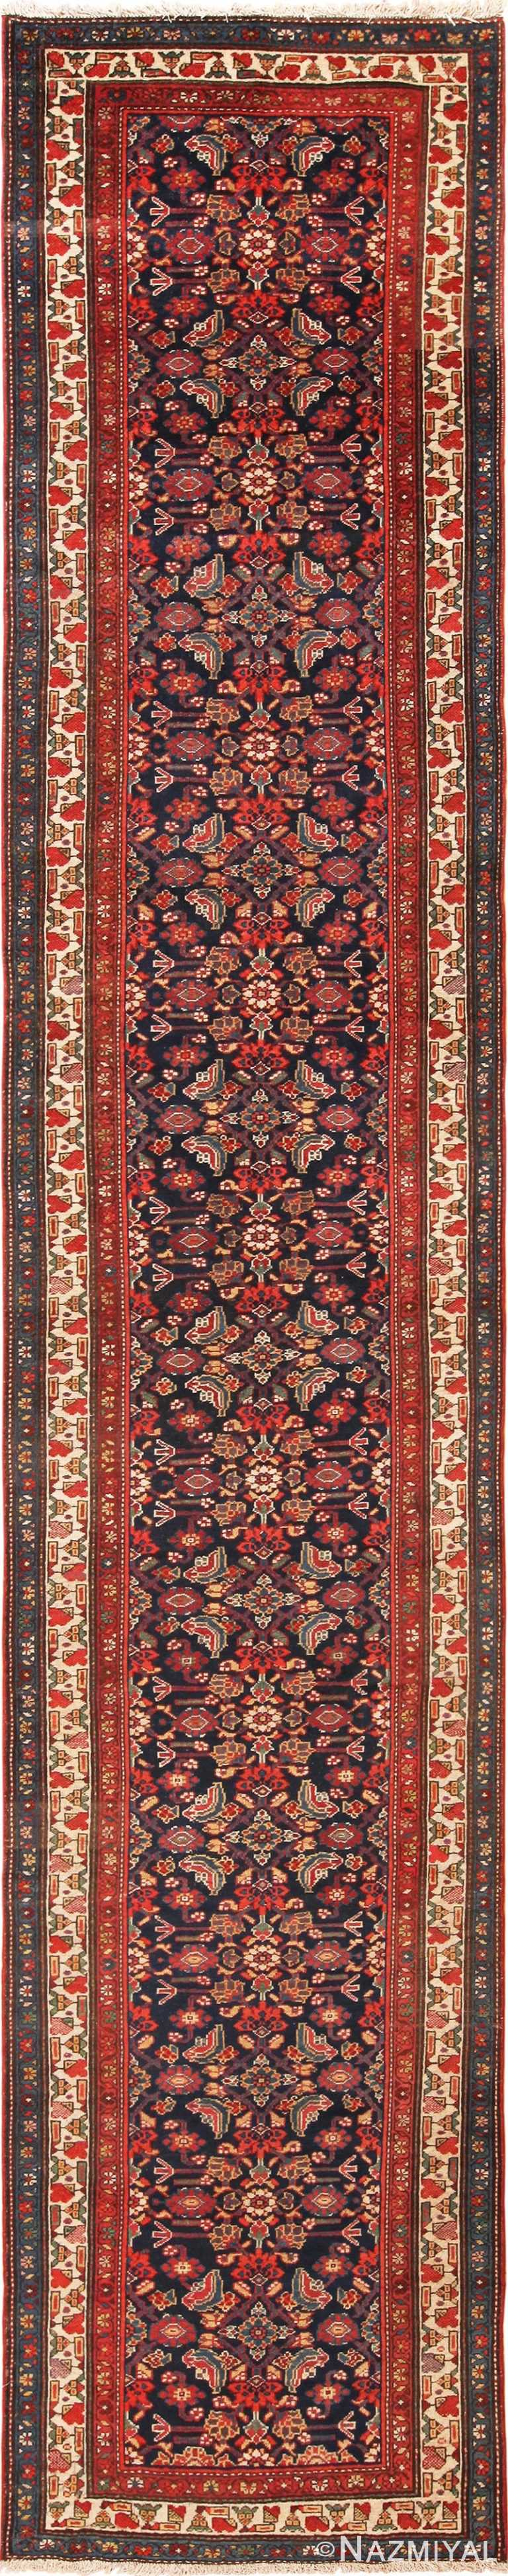 Full Antique Persian Malayer rug 50159 by Nazmiyal